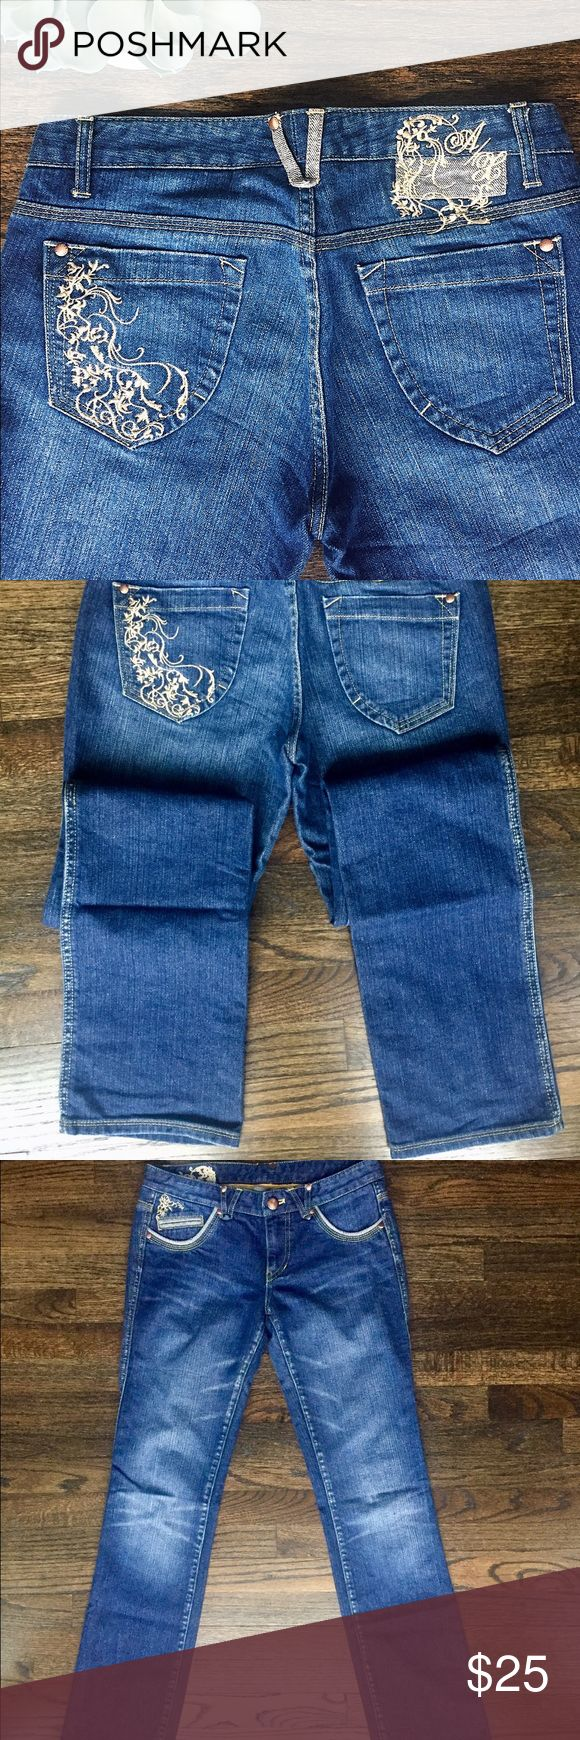 Armani Exchange Jeans Armani Exchange boot cut jeans with beautiful sparkly gold embroidery and sparkly gold woven throughout. Soft distressing. Button and zip fastening. Mid rise. In like new condition, worn twice. A/X Armani Exchange Jeans Boot Cut